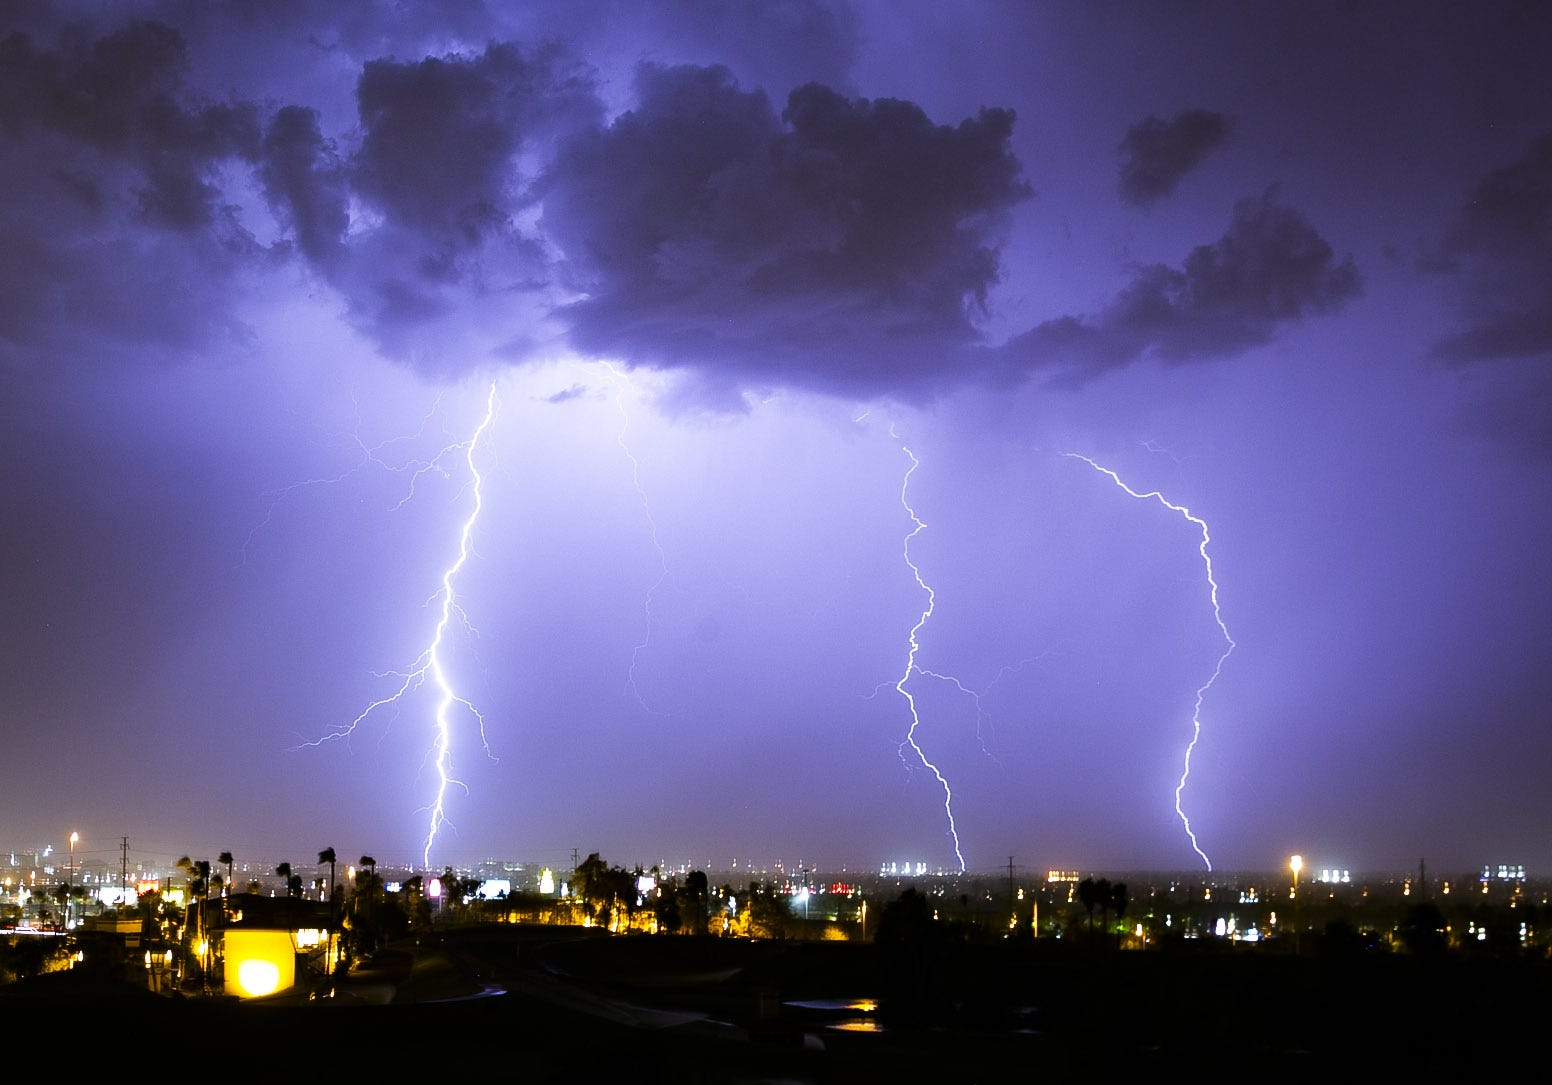 Monsoon storm passes over Phoenix with lightning and rain